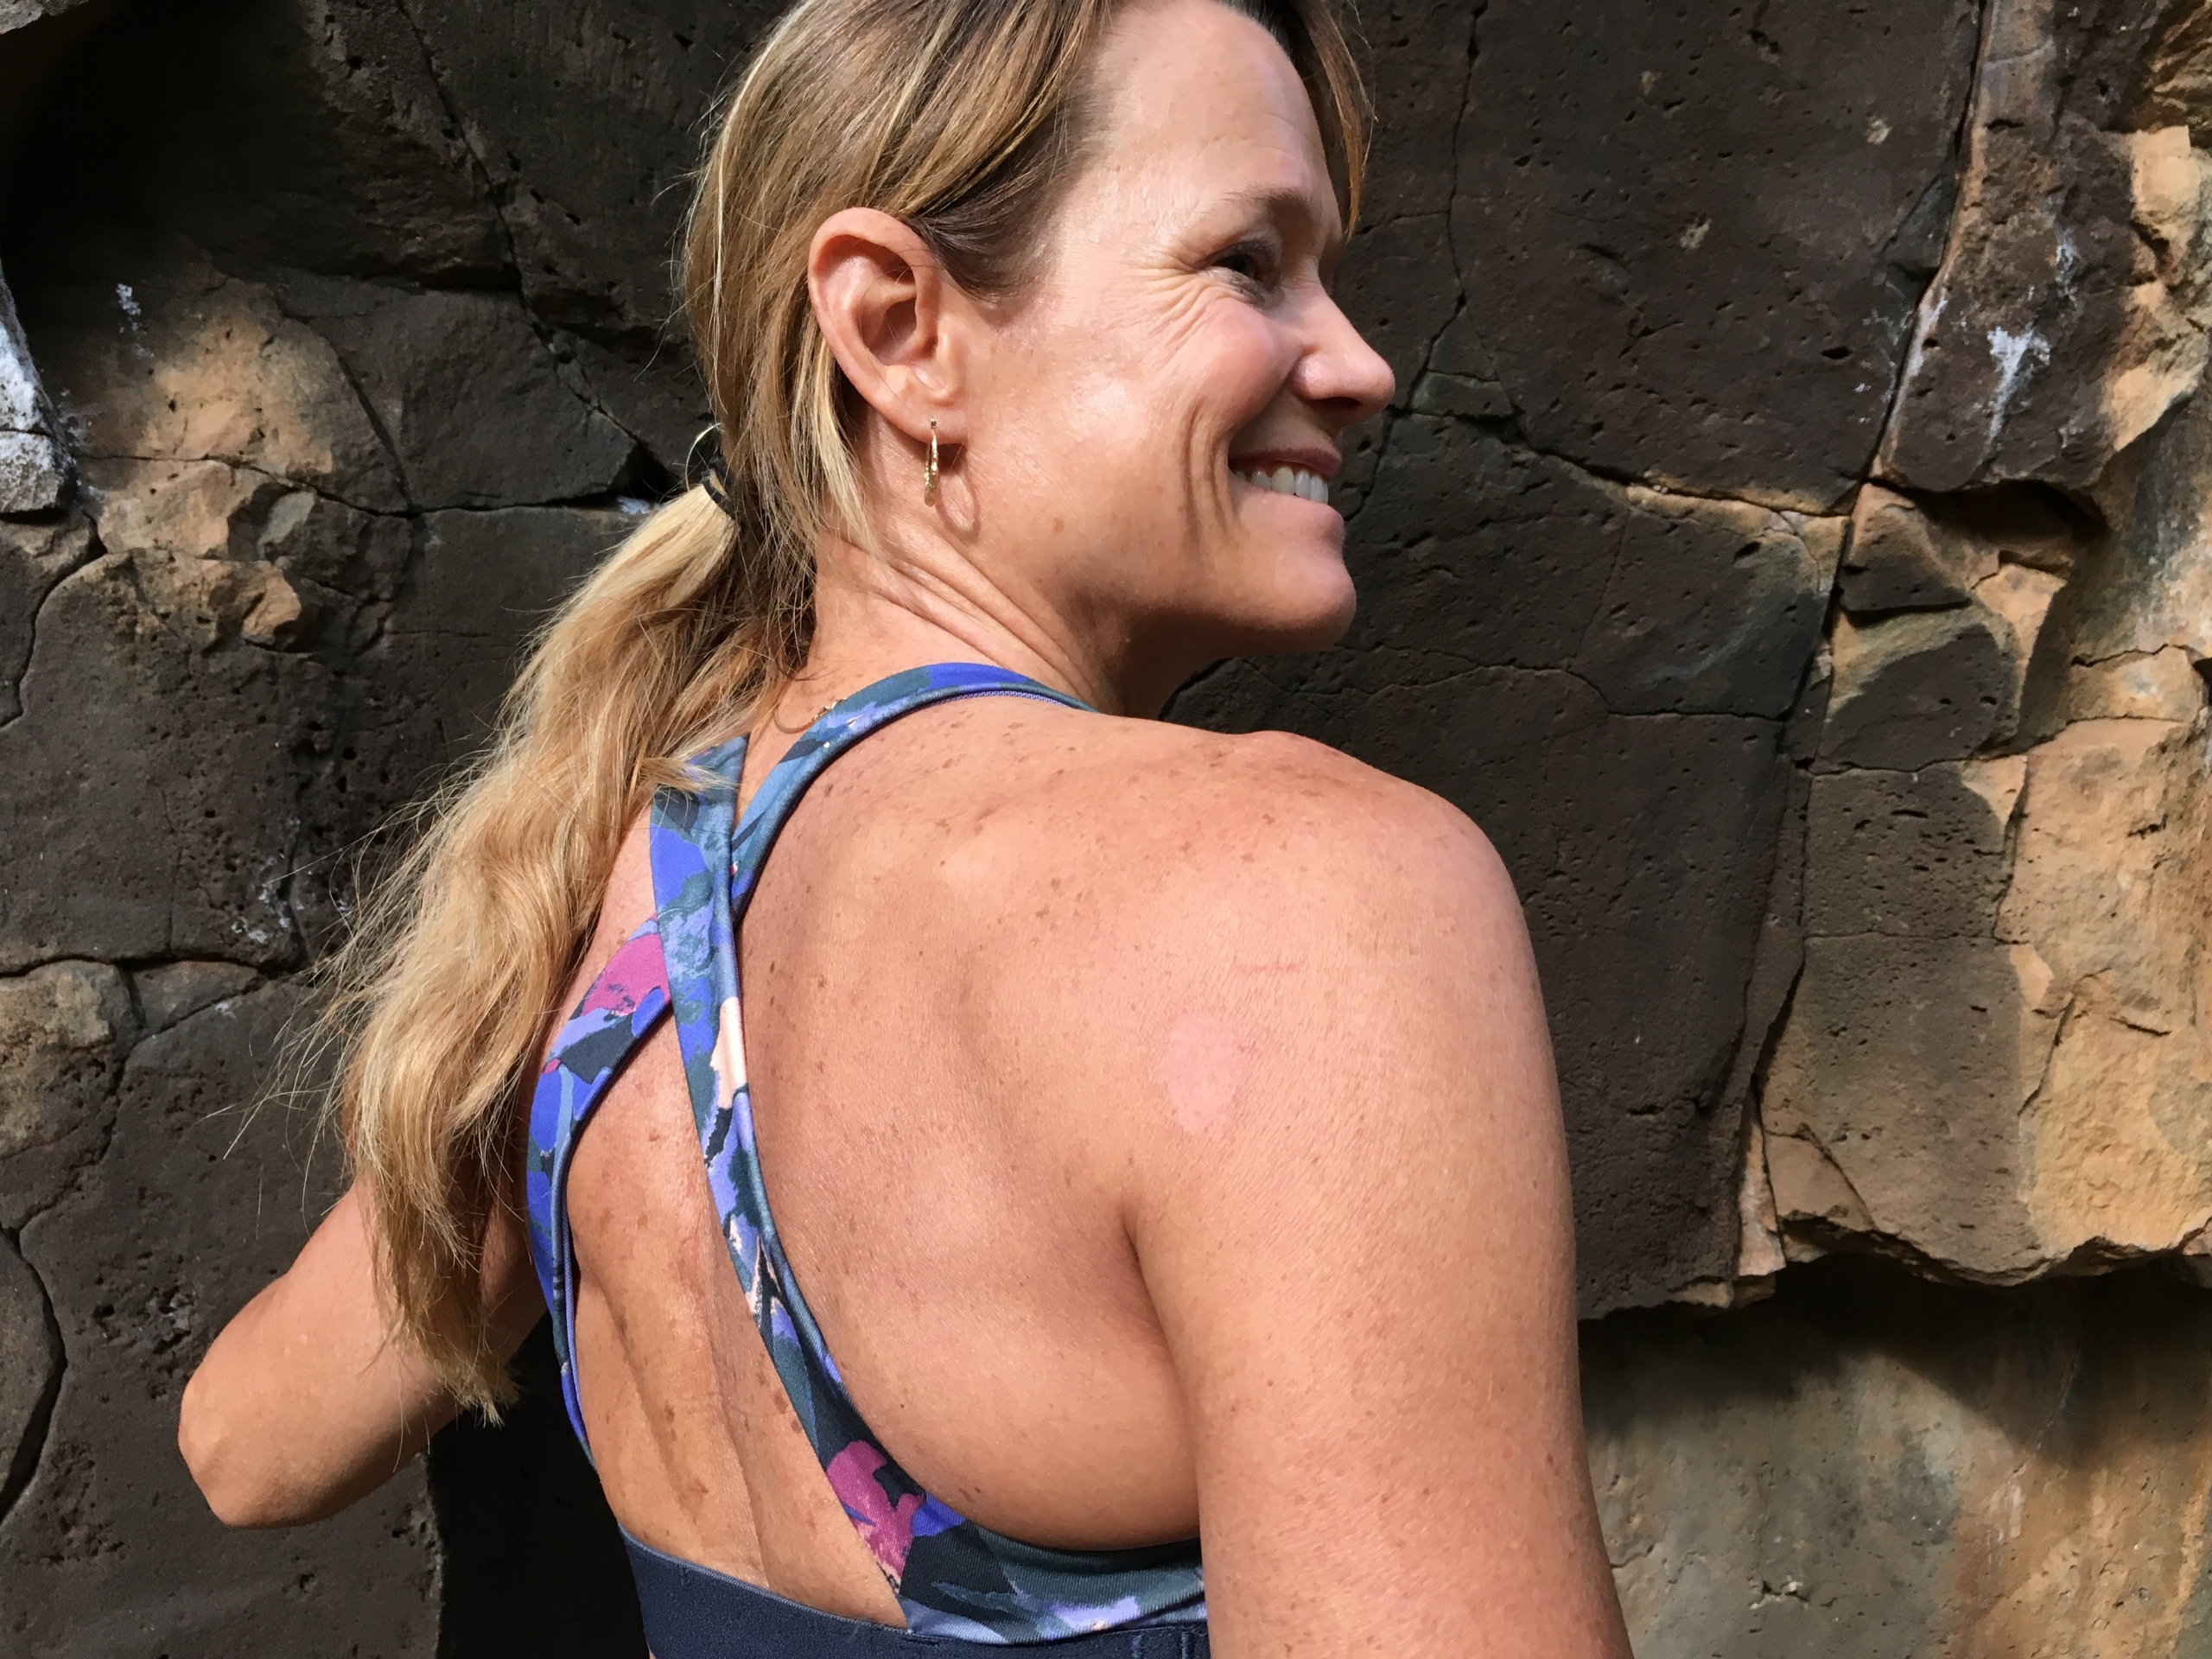 Kitty Calhoun, Co-Owner Chicks Climbing showing her Patagonia Sports Bra and Indian Creek scar on her right shoulder. ©Kitty Calhoun Collection.